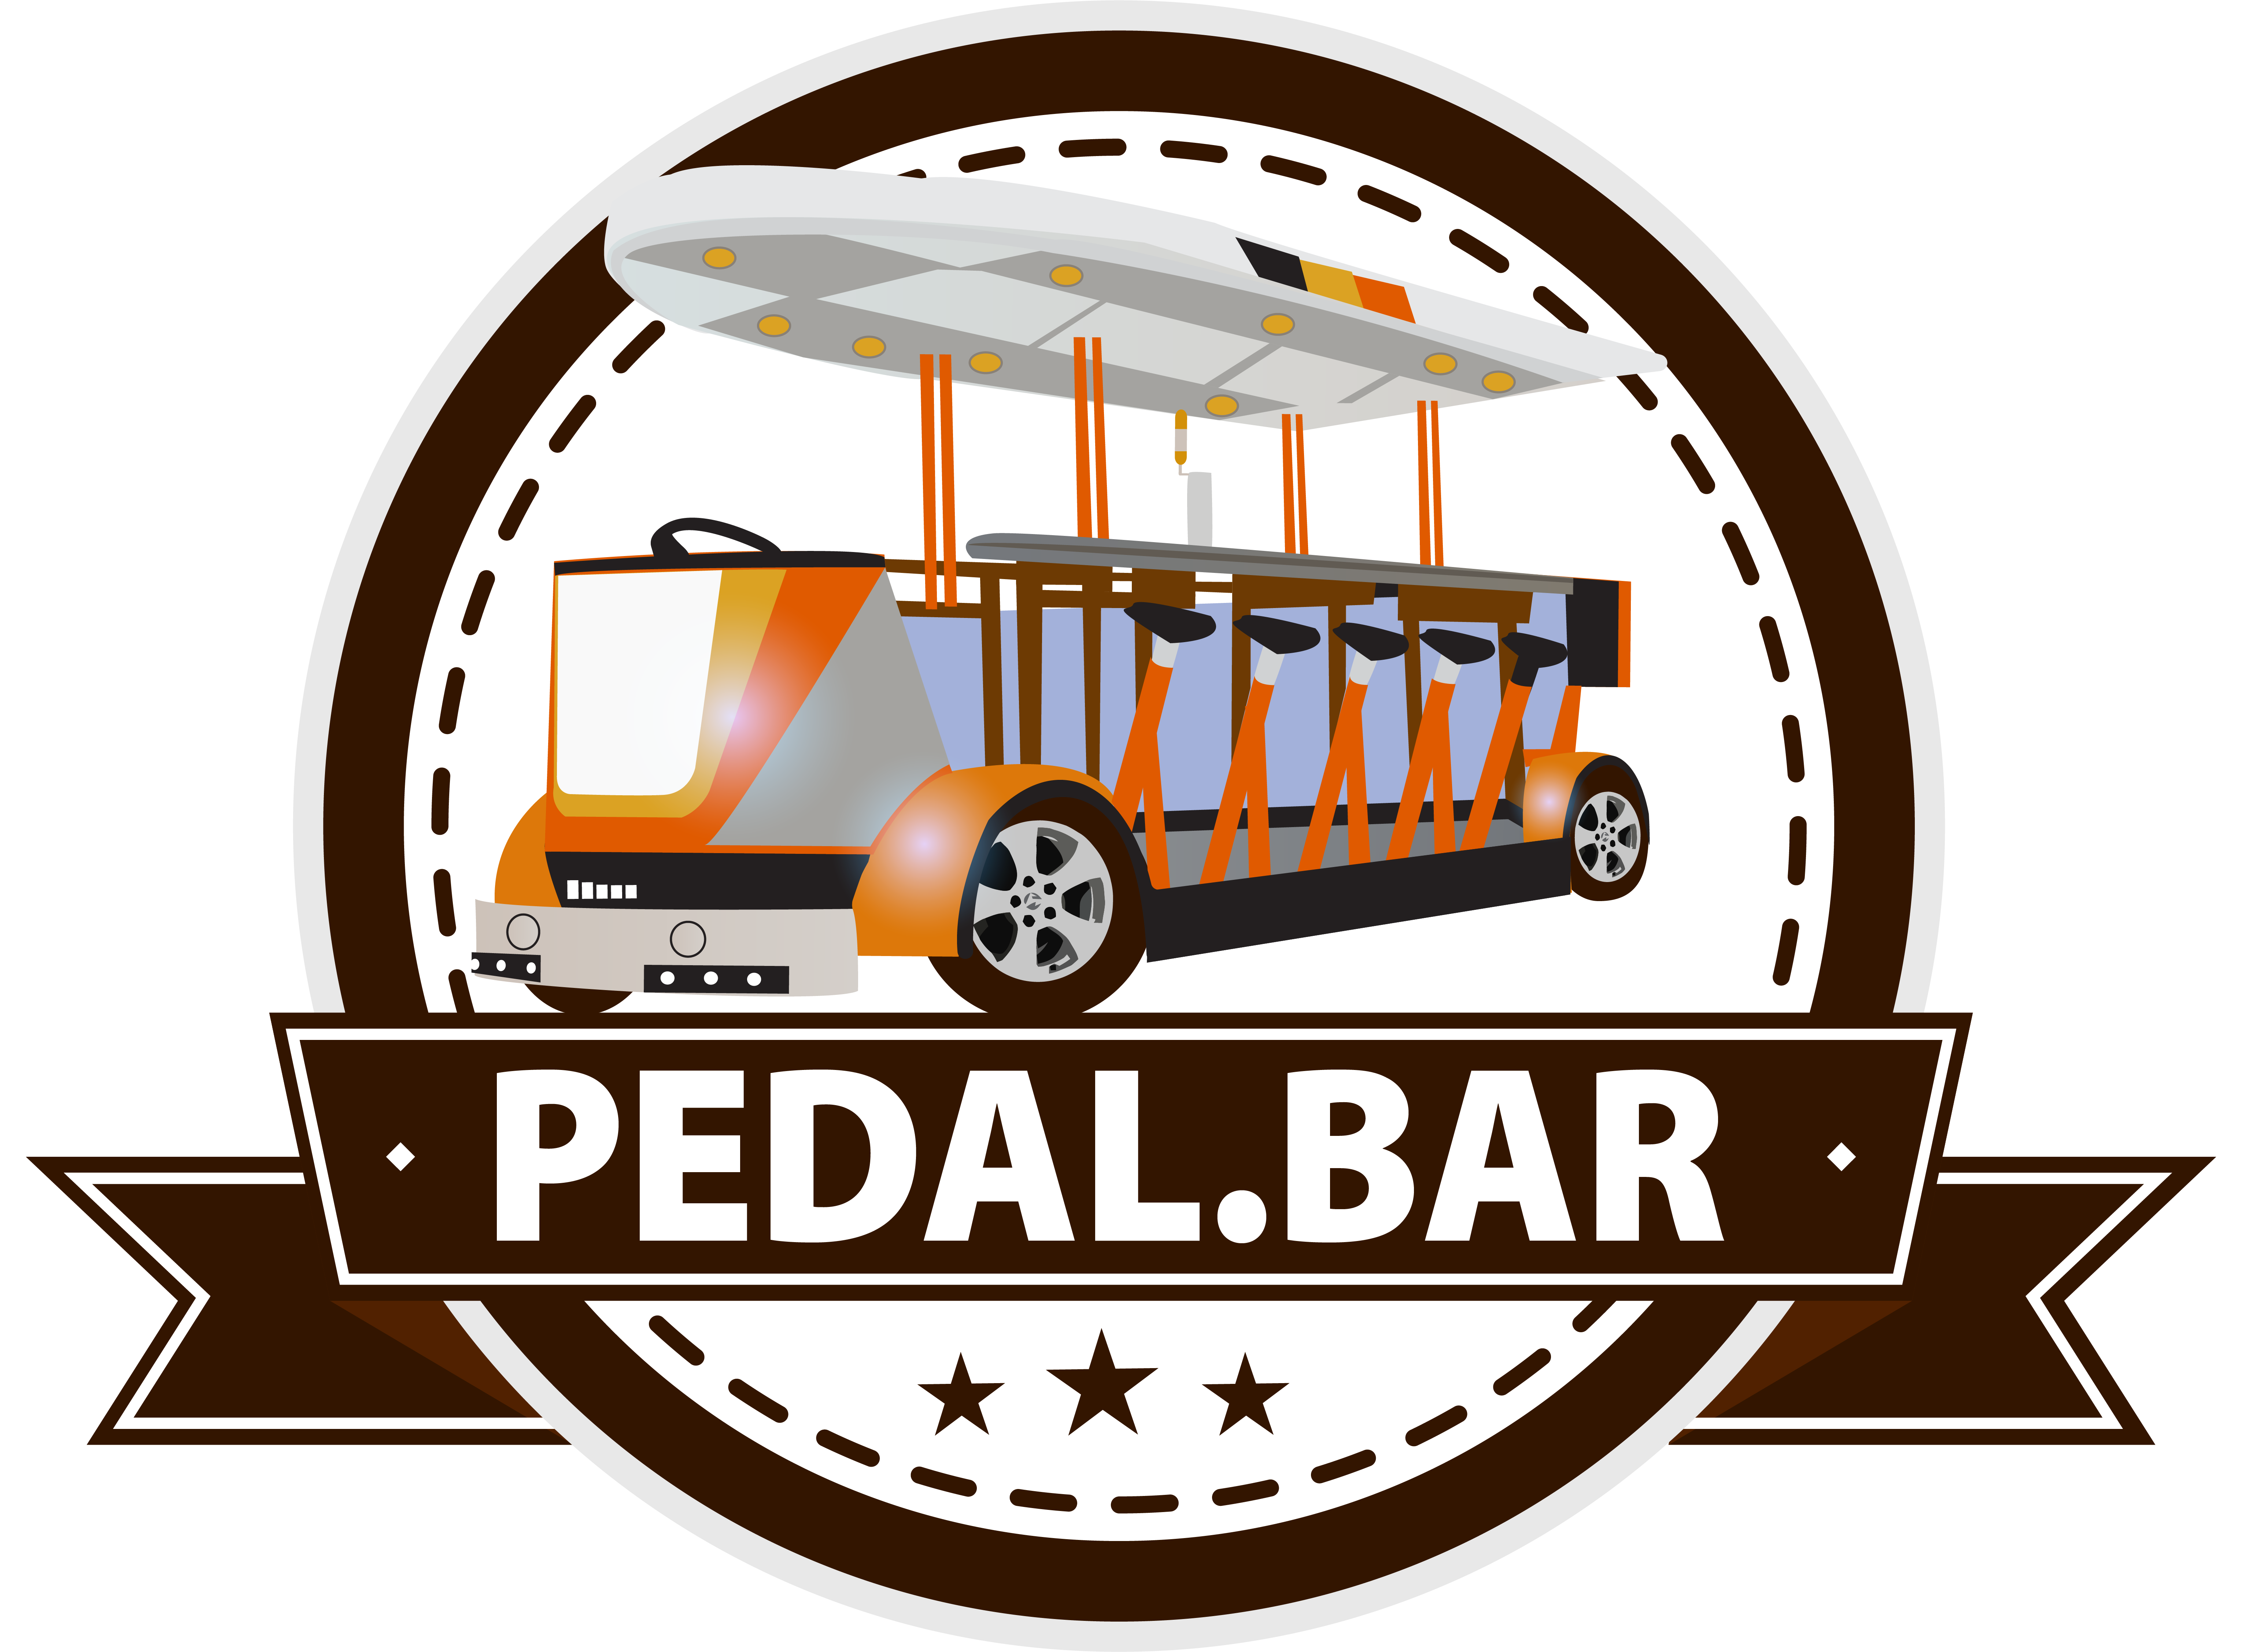 Book Your Pedal Bar Crawl at Pedal.Bar!